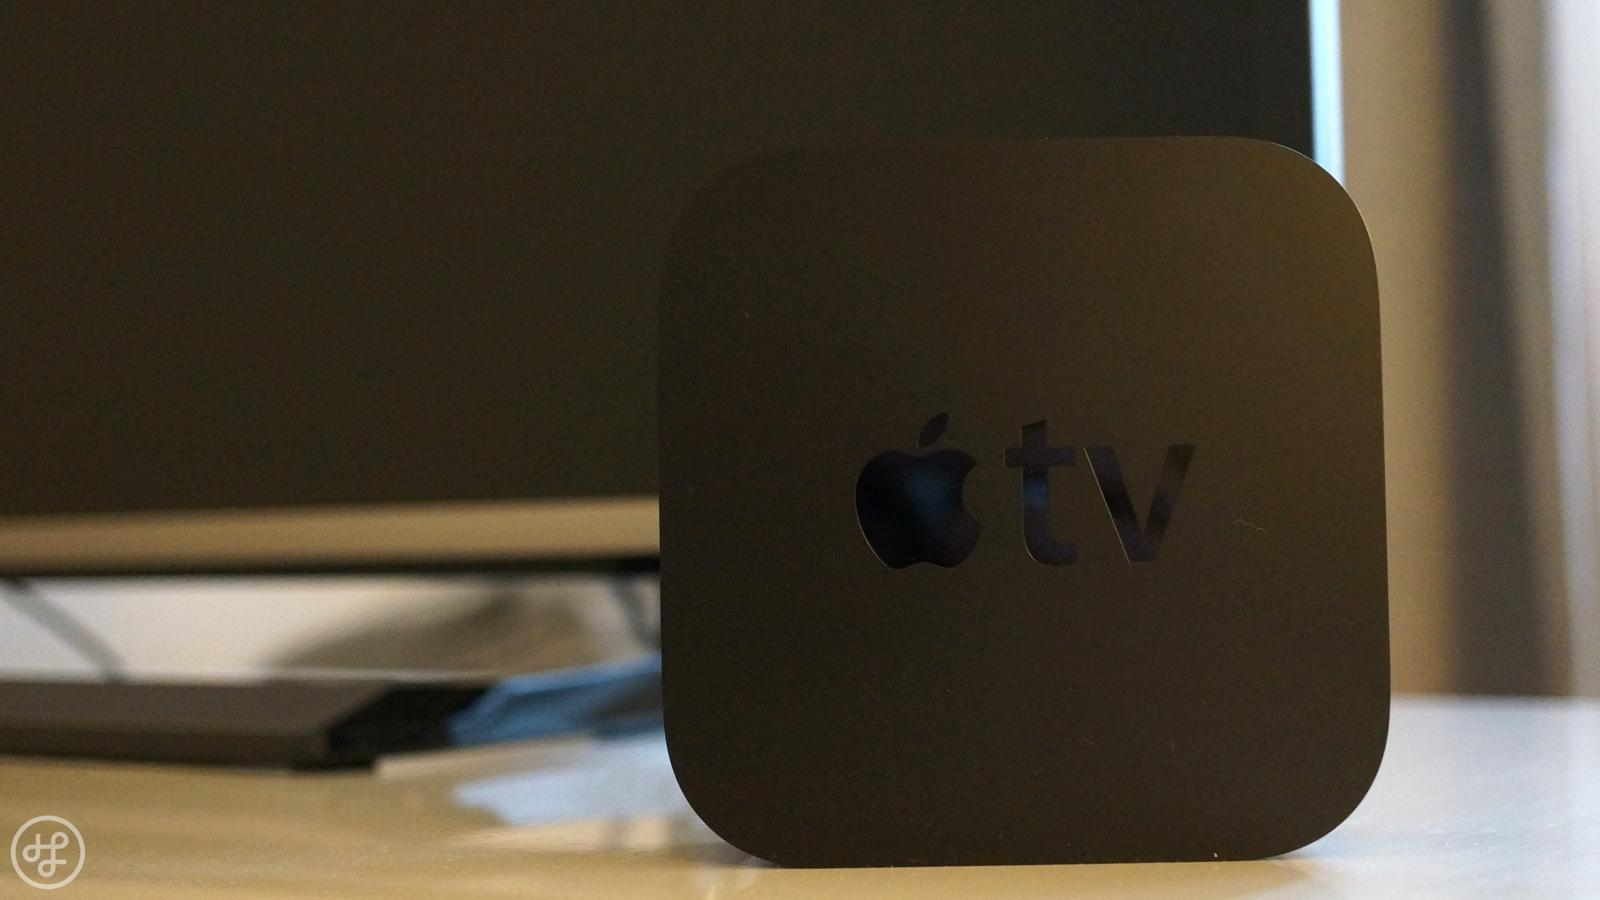 Apple TV 05